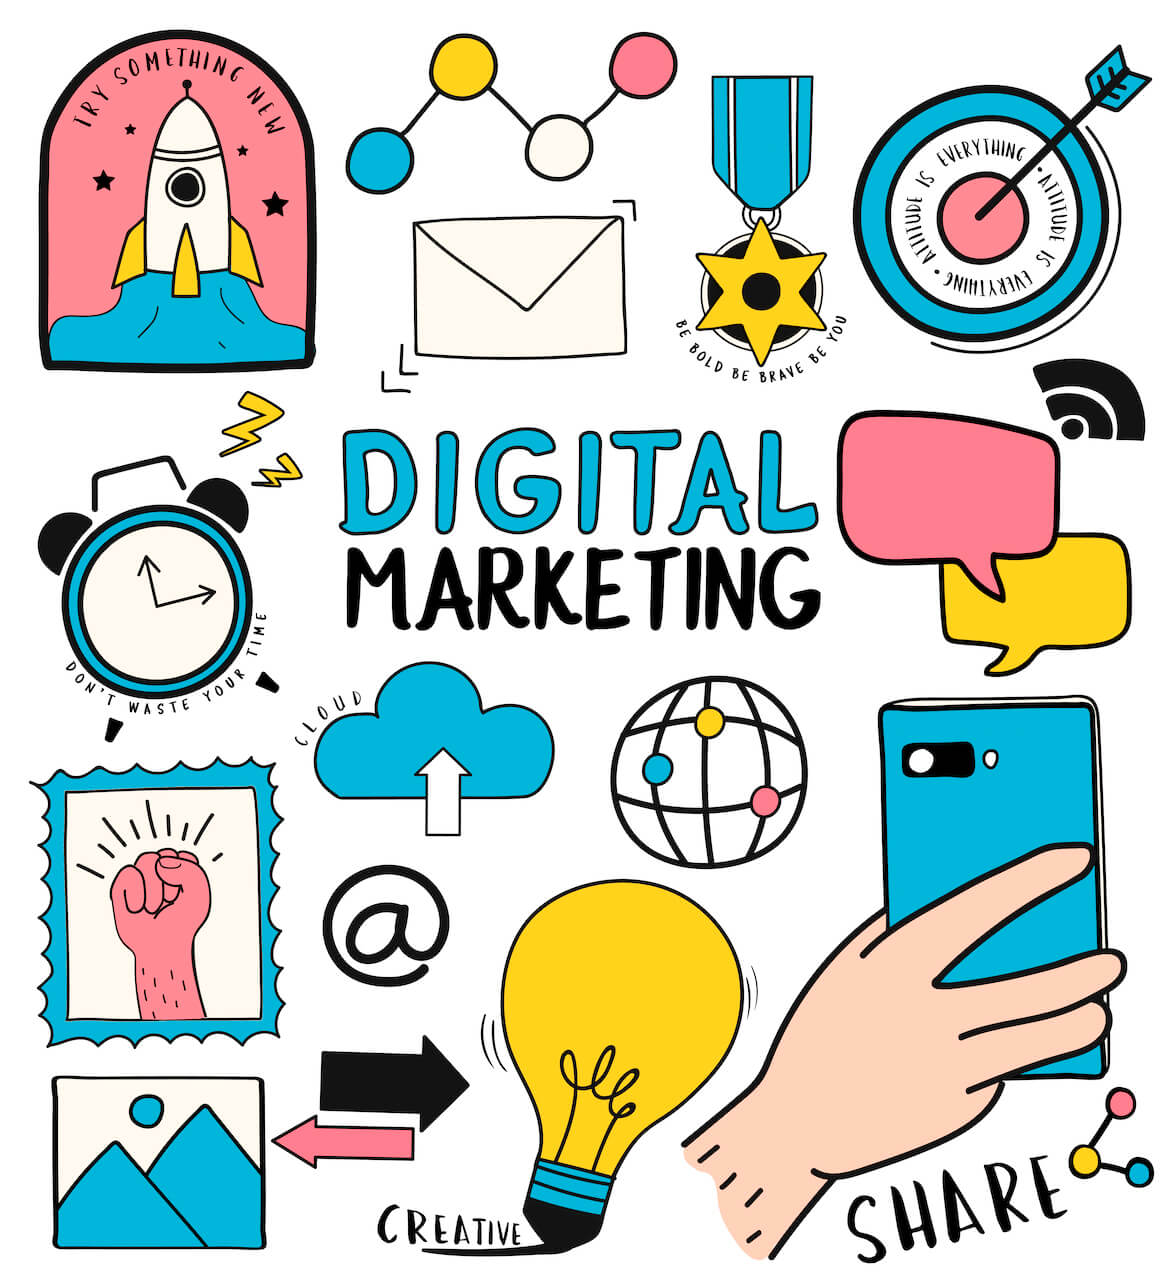 Traditional Marketing vs. Digital Marketing: Which is an effective marketing strategy for your business?